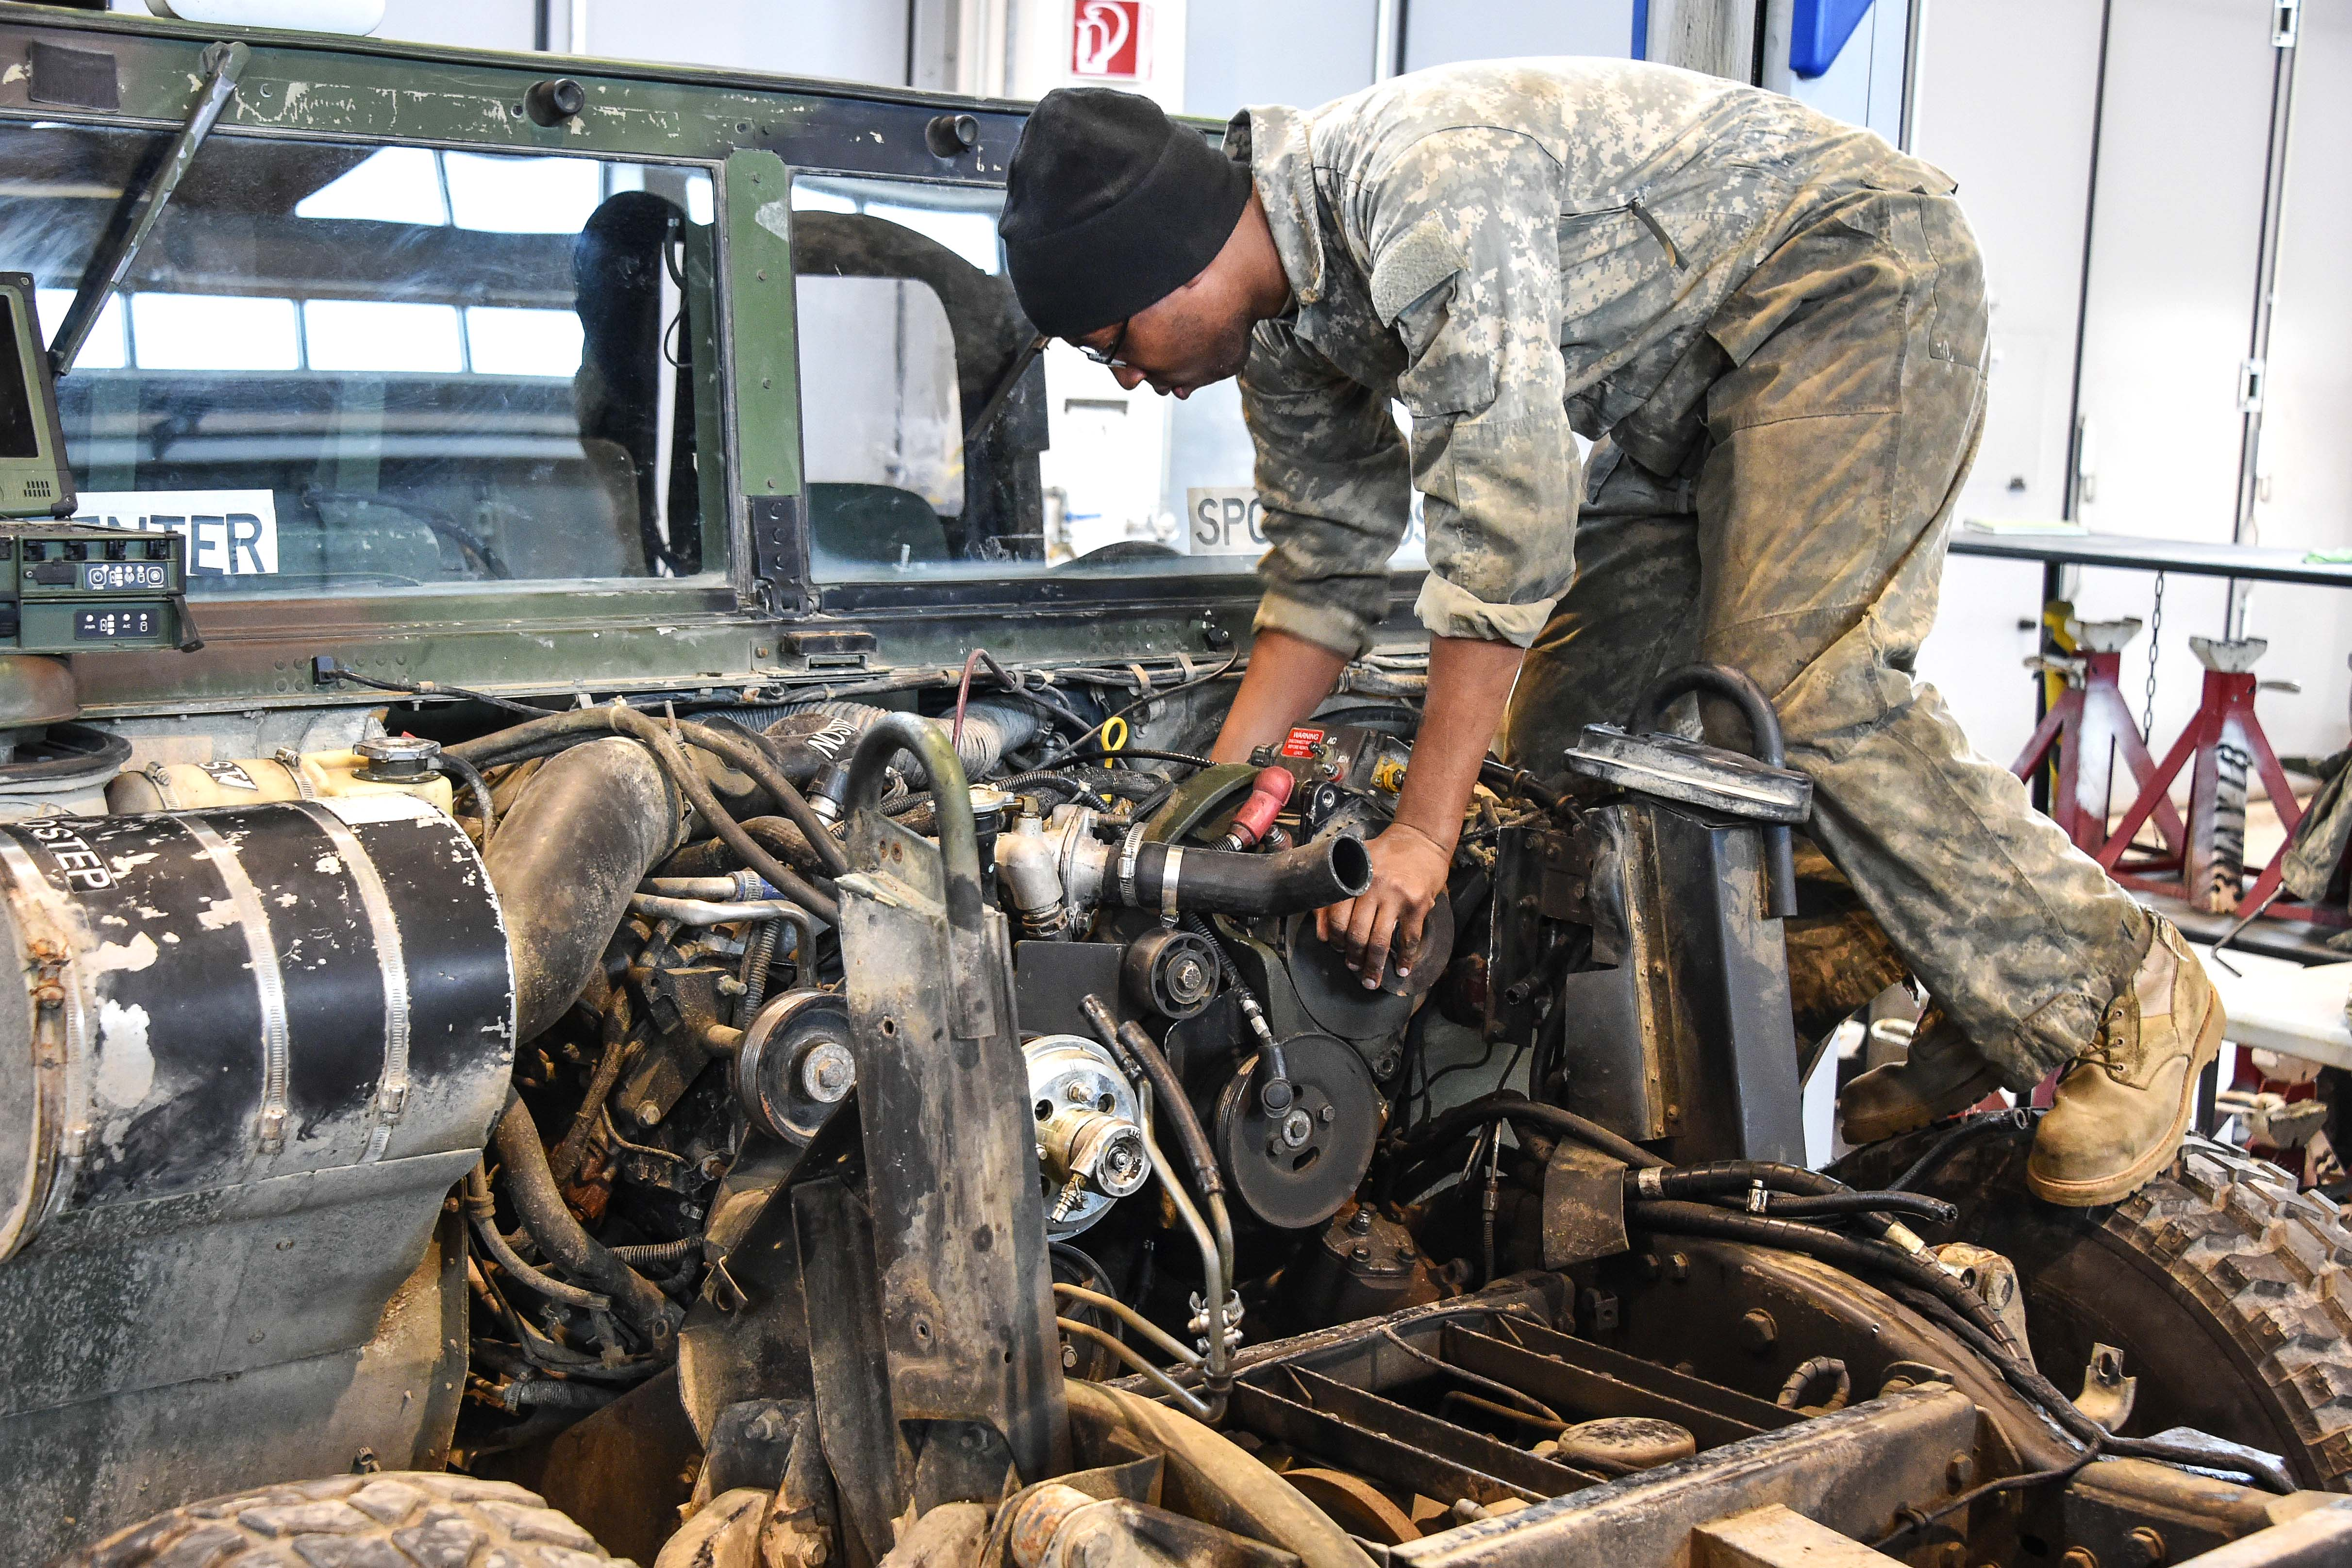 A soldier performs maintenance on a Humvee vehicle engine.